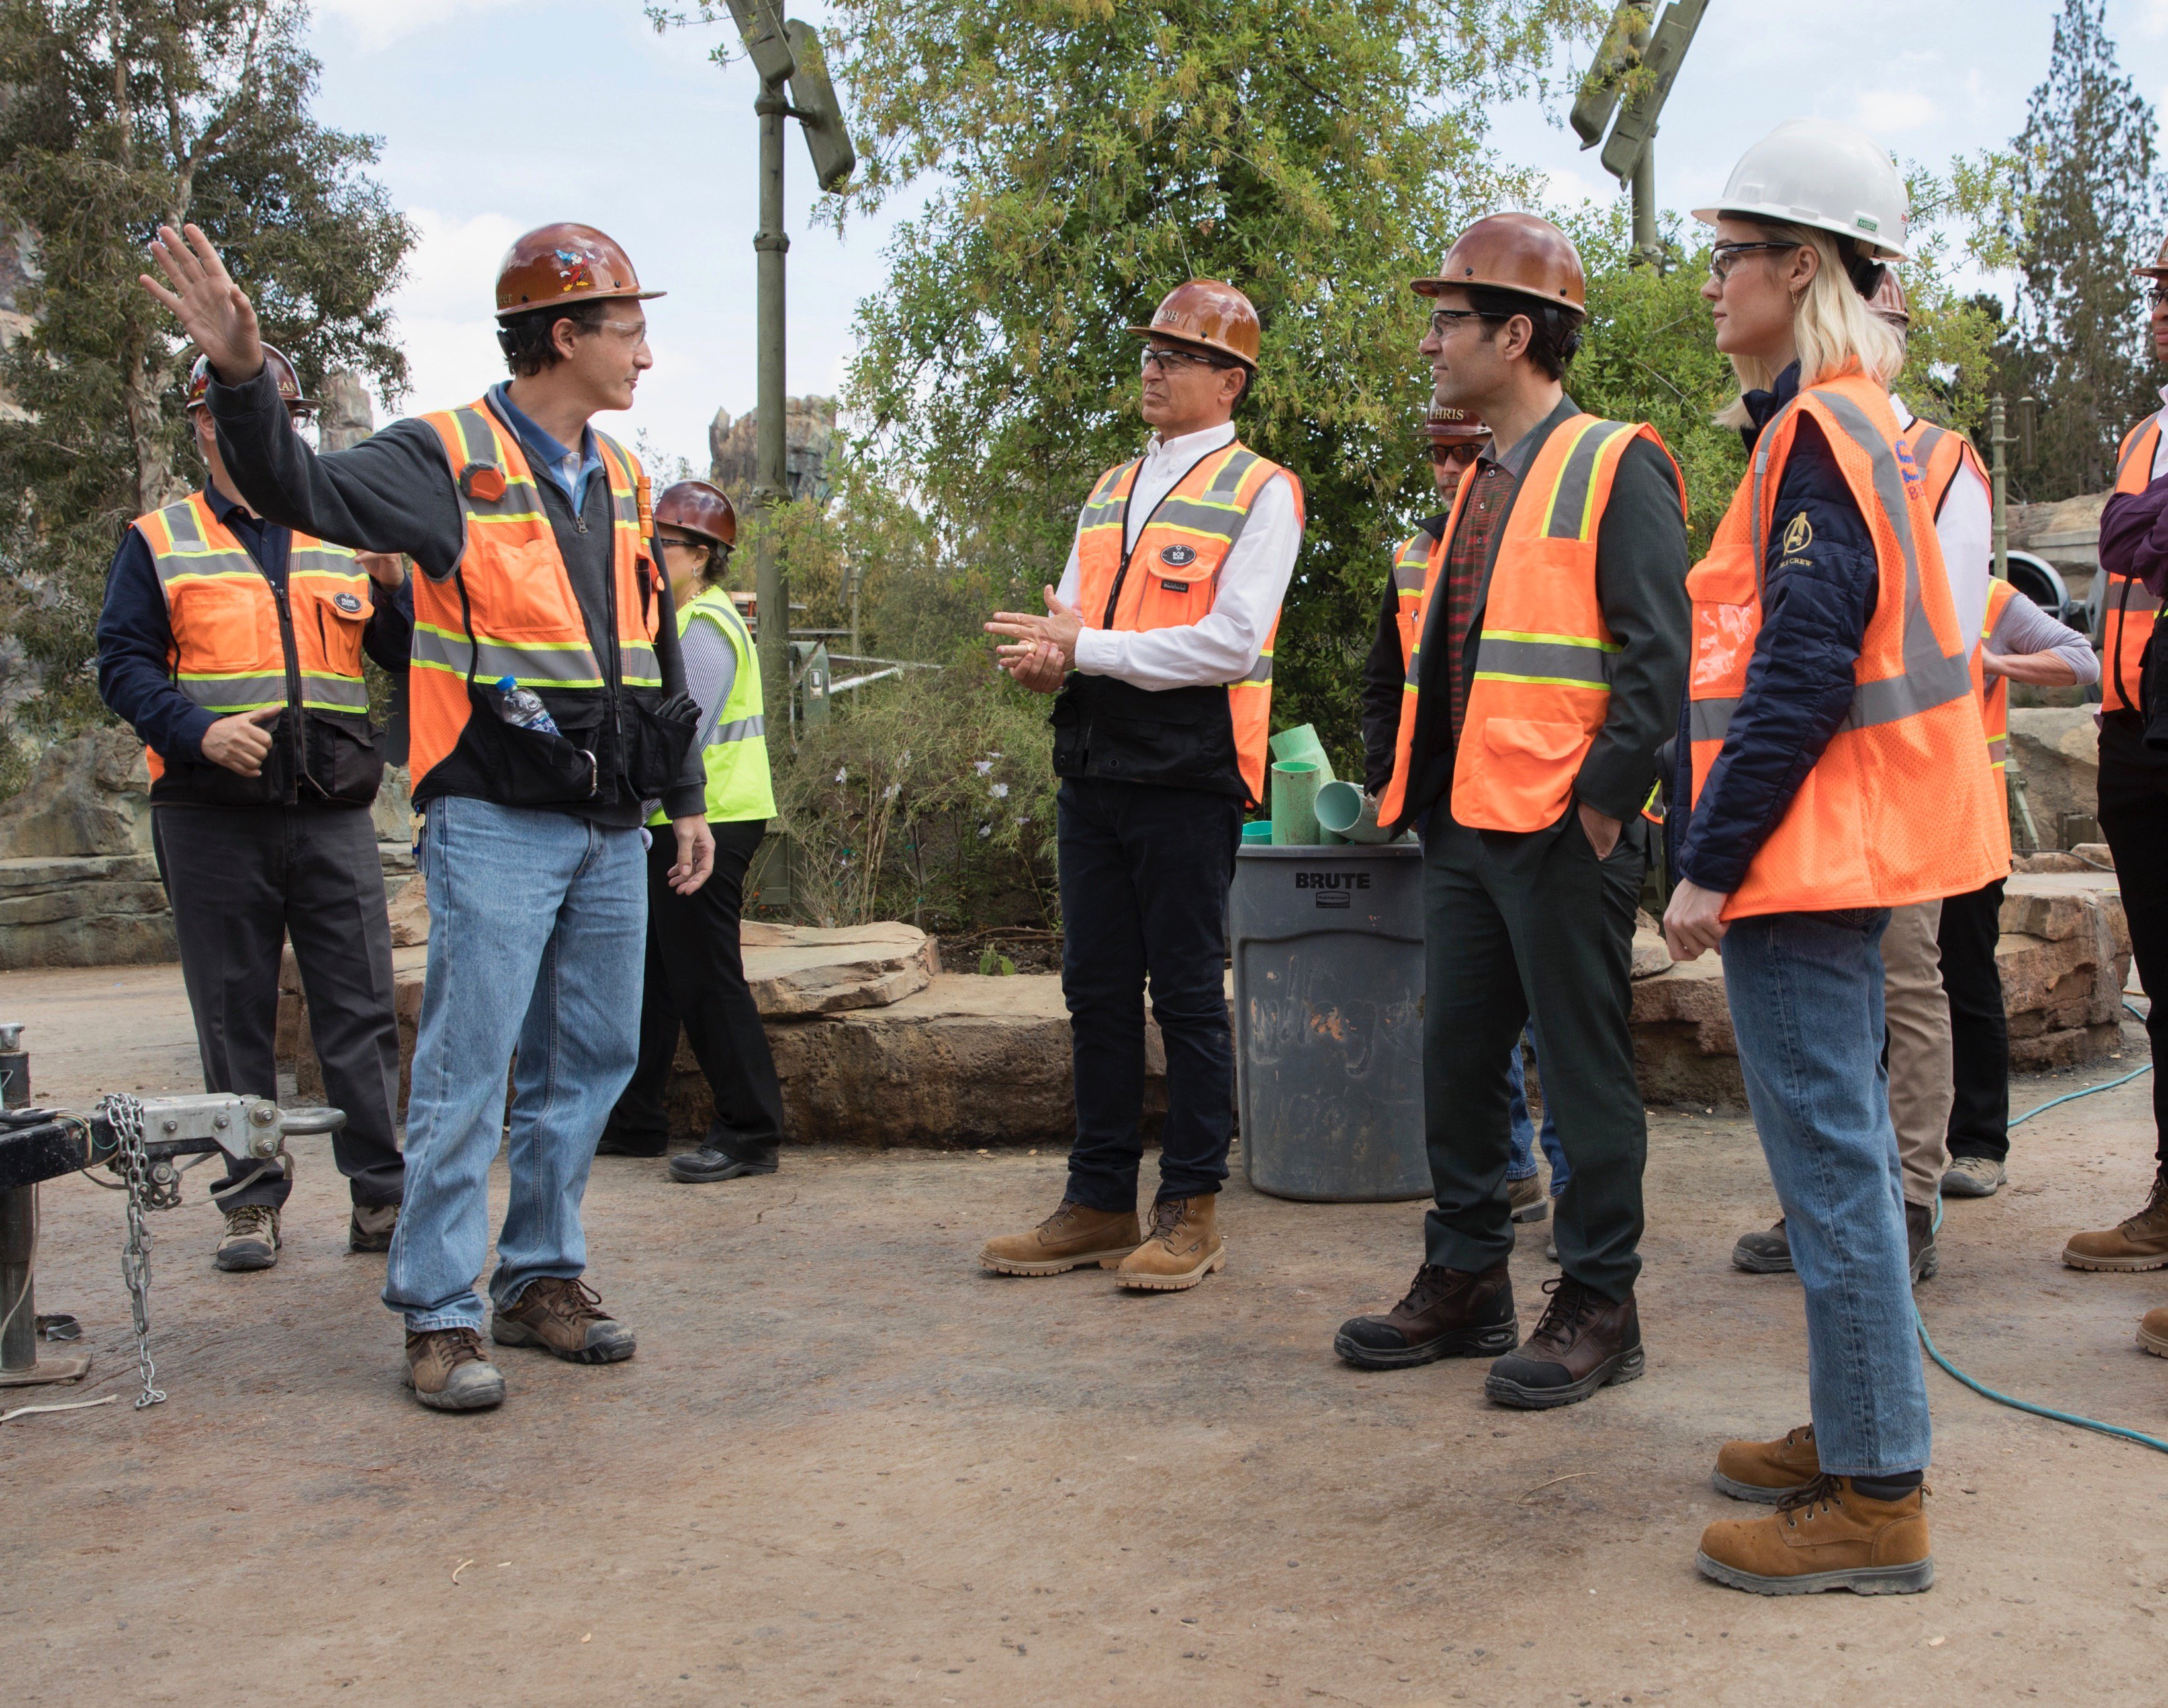 Bob Iger with Actors Paul Rudd and Brie Larson at Star Wars Galaxy's Edge in Disneyland